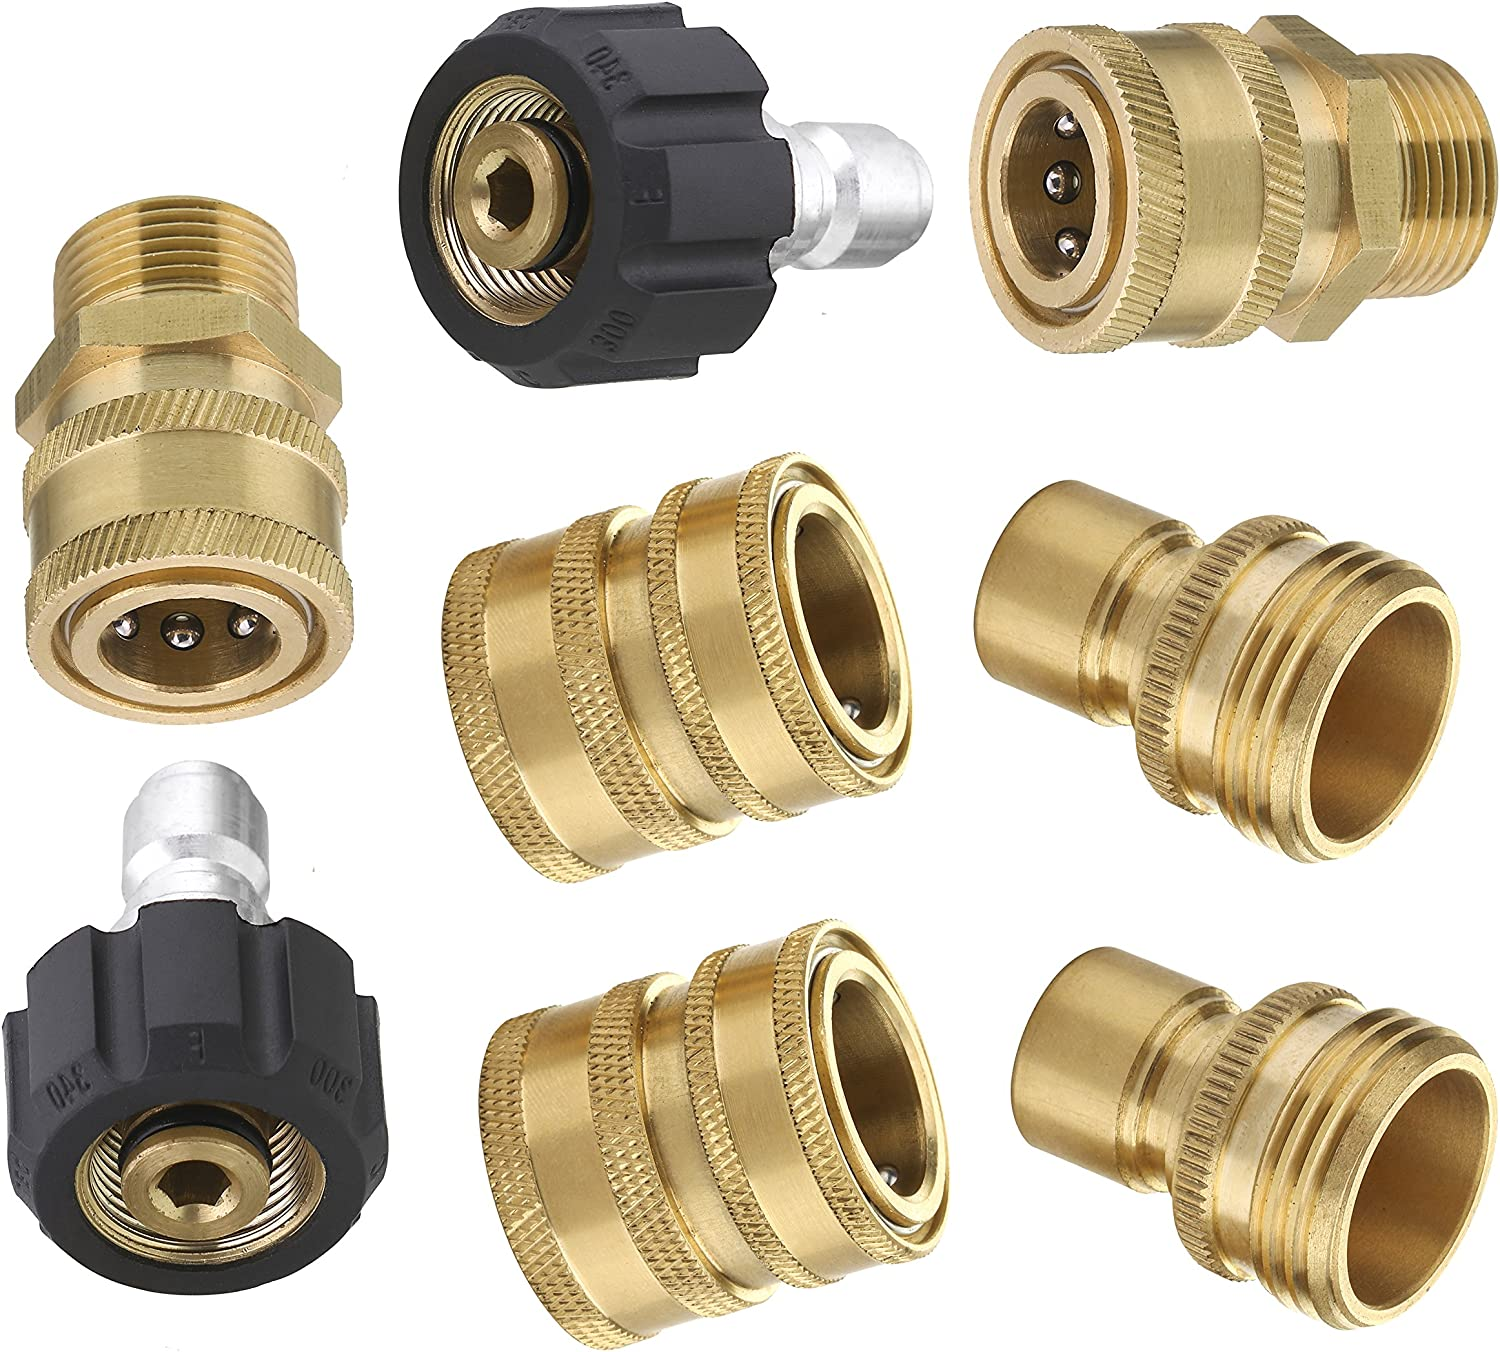 KARCHER COMMERCIAL HIGH PRESSURE WASHER HOSE OUTLET QUICK RELEASE COUPLING KIT